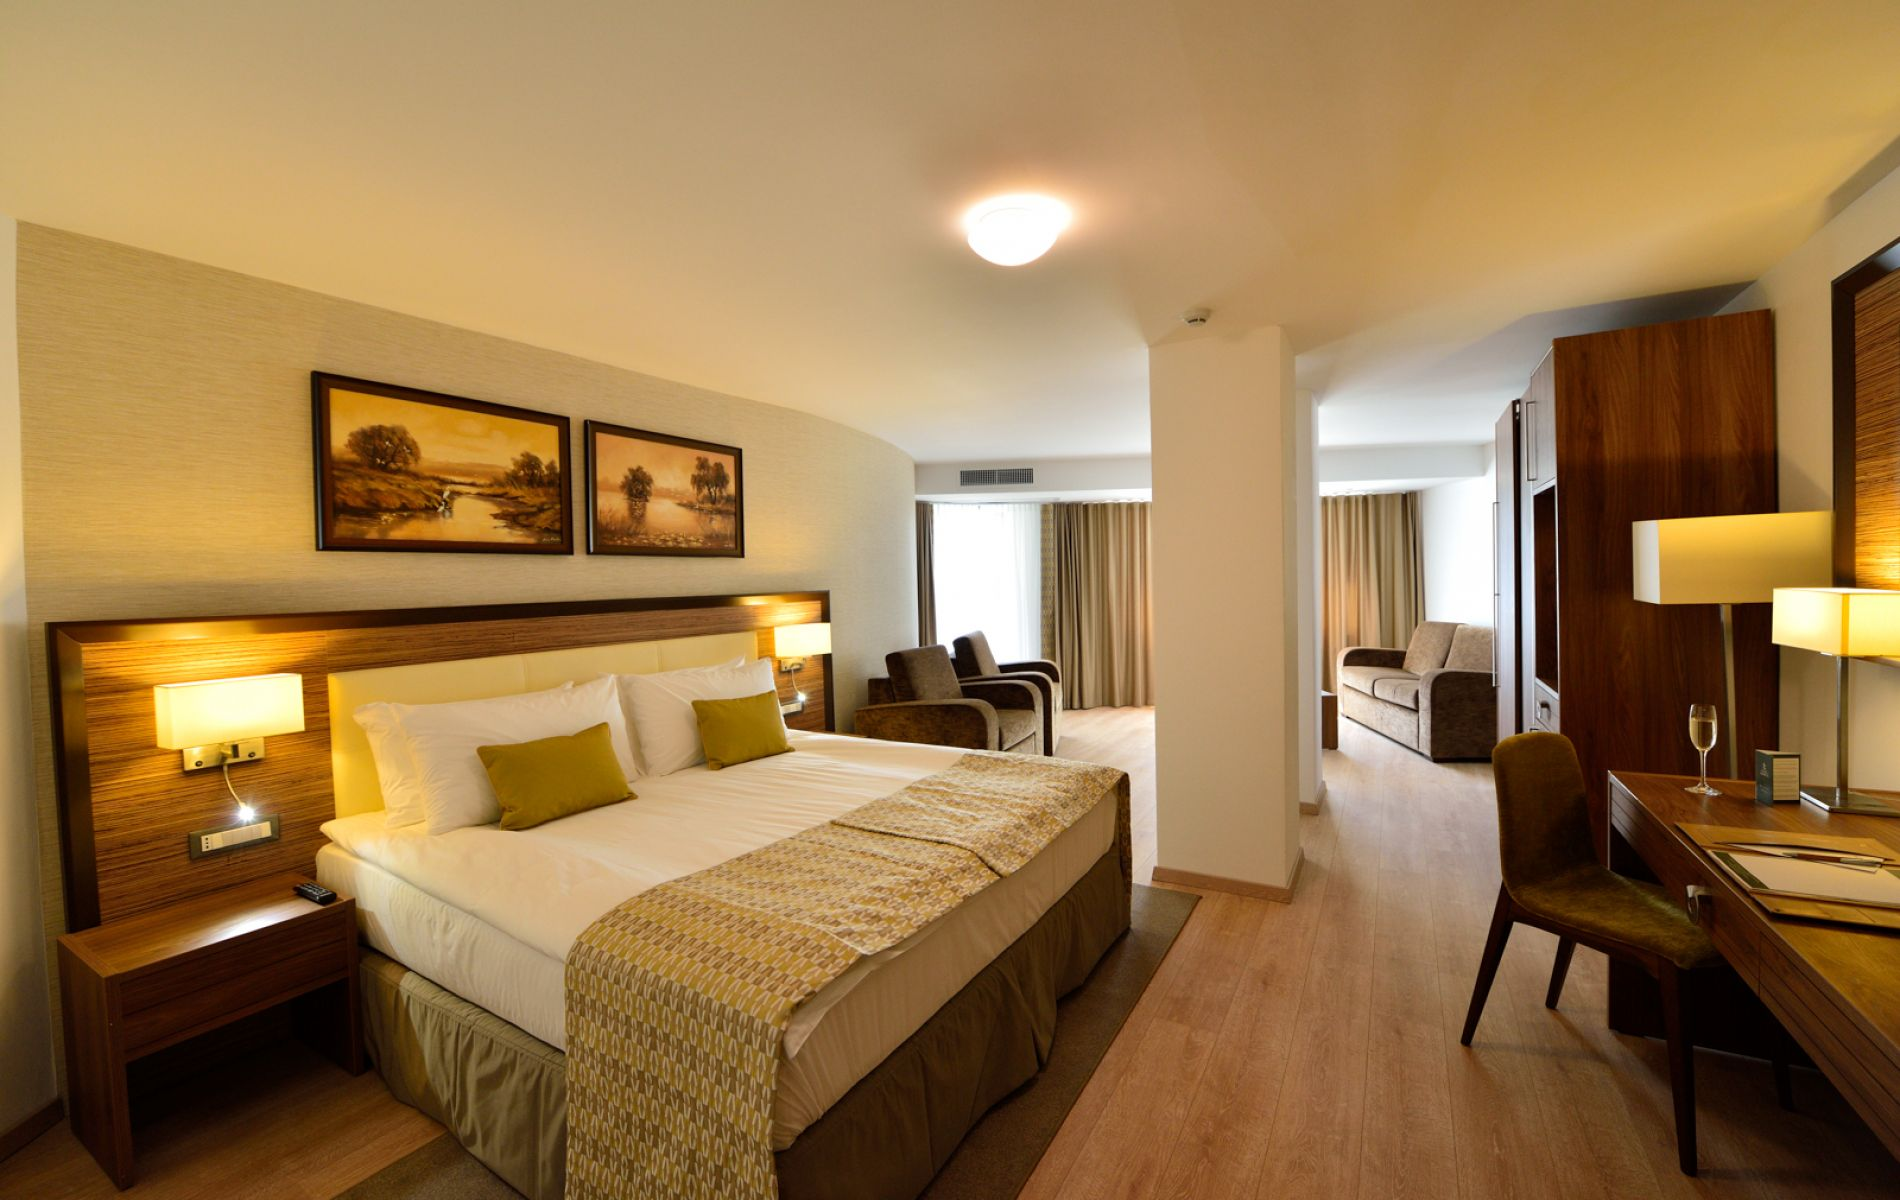 Hotel New Egreta 4*